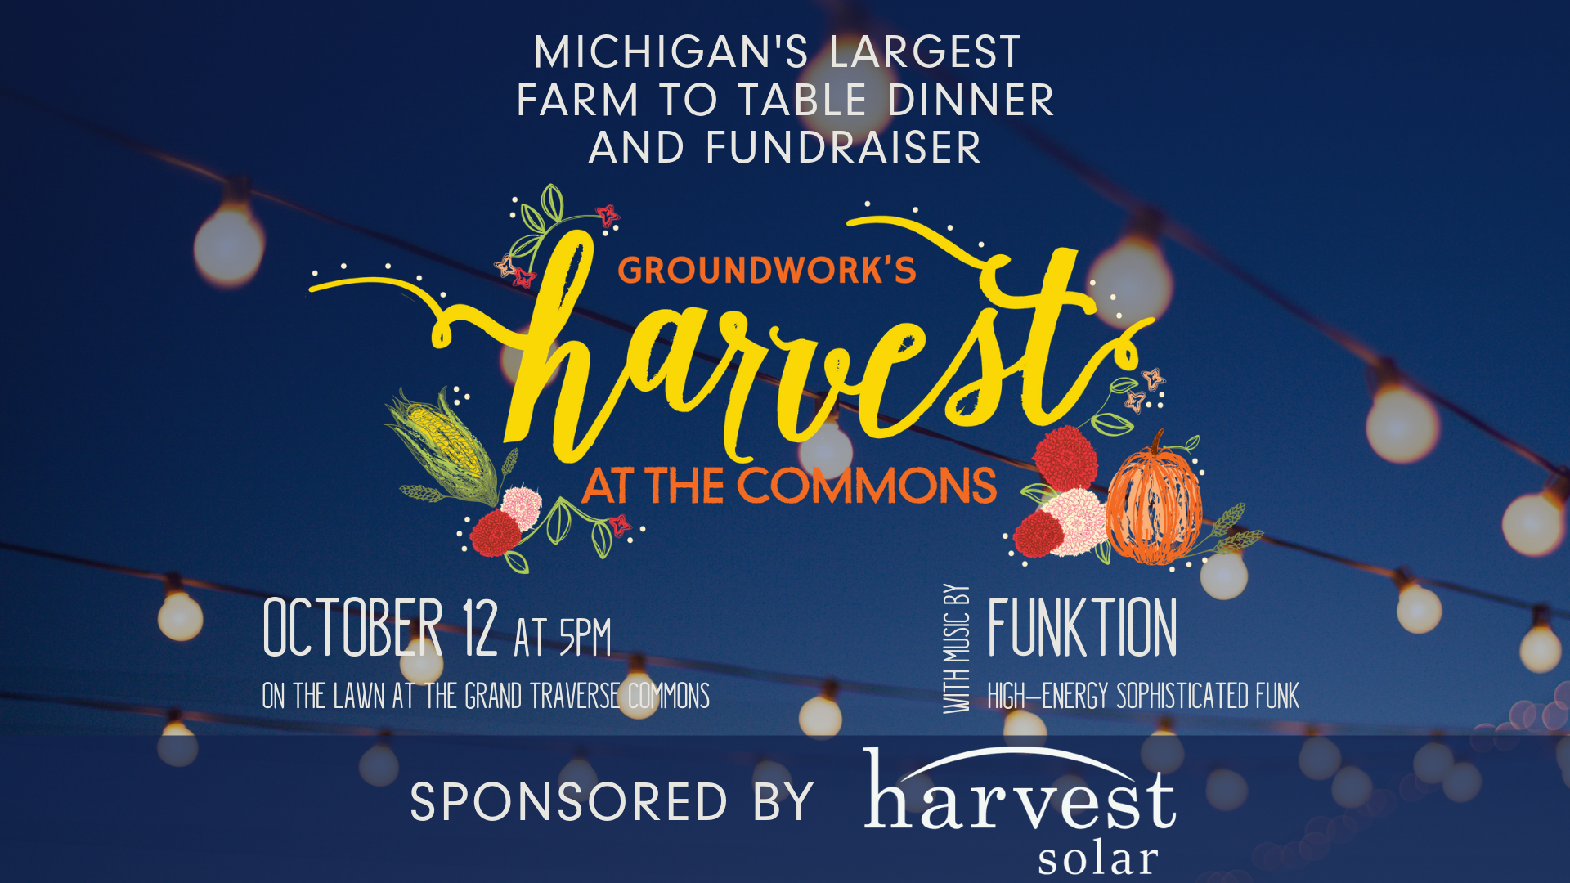 Harvest at the Commons 2019